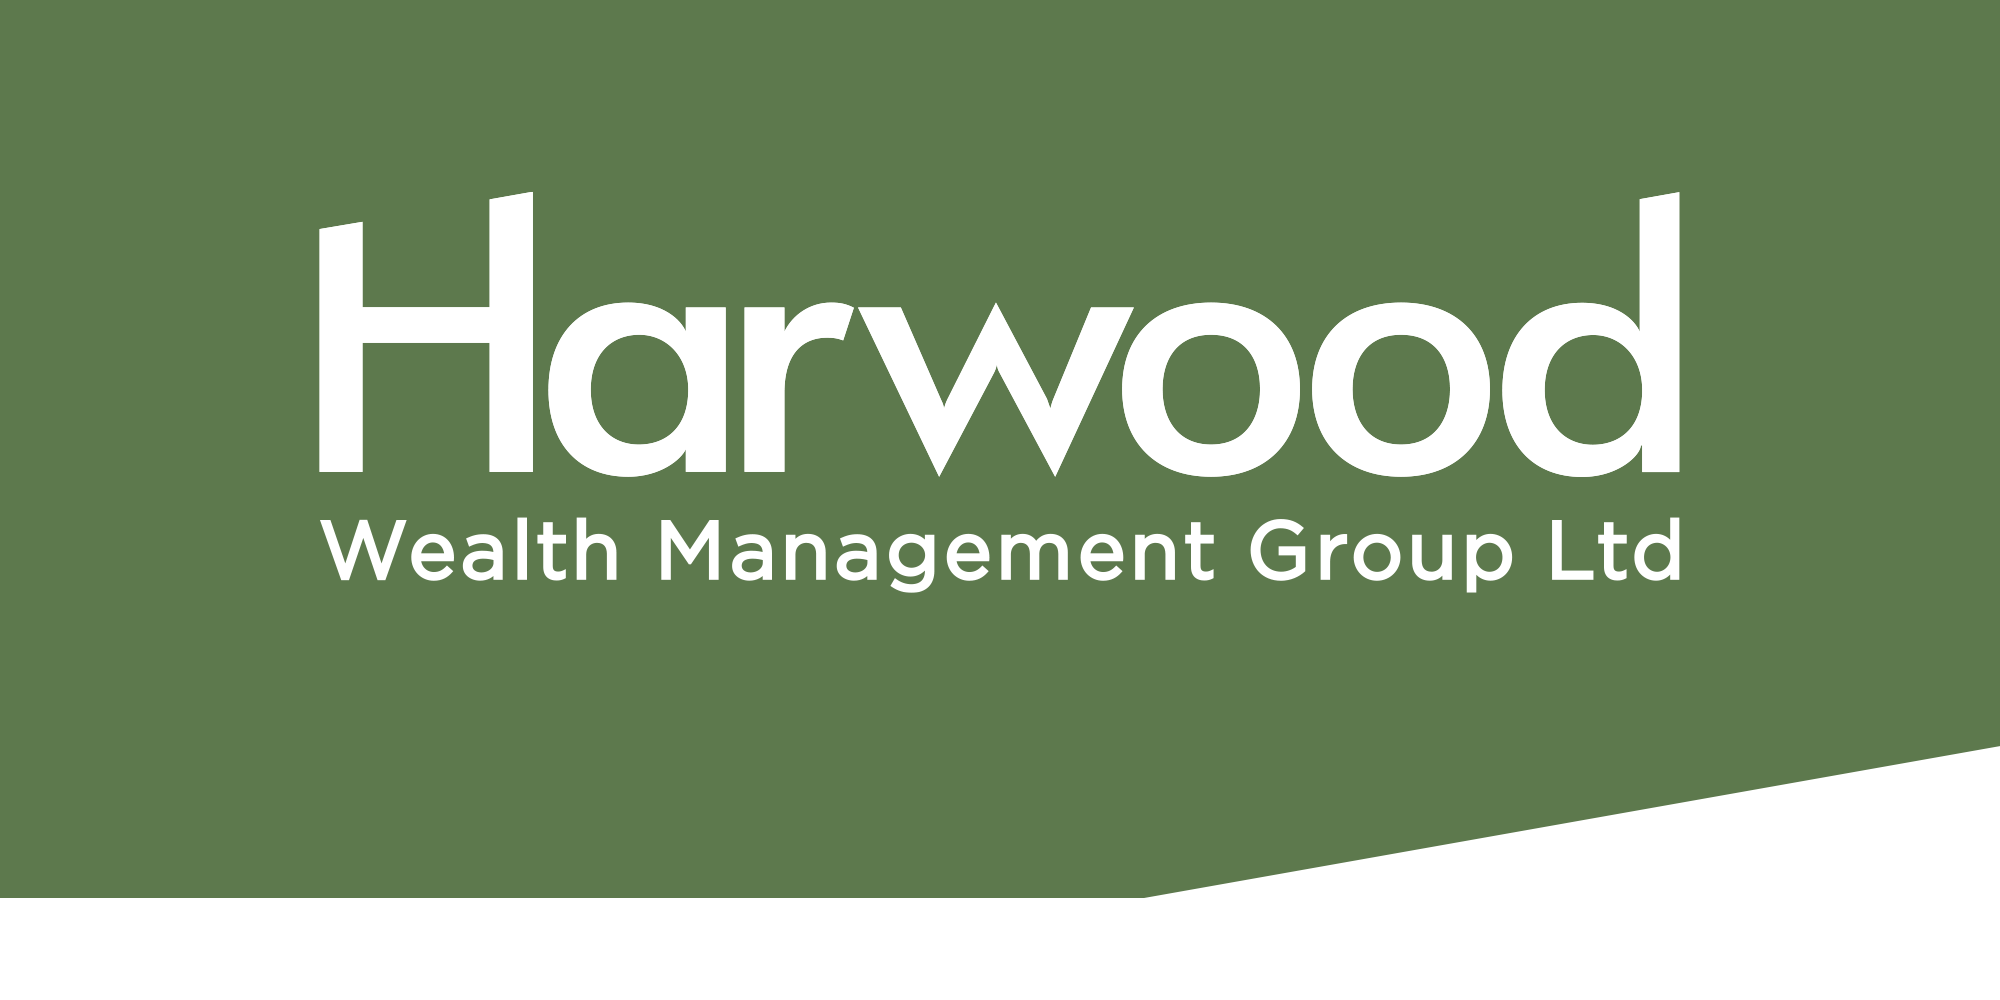 Harwood Wealth Management Group Plc